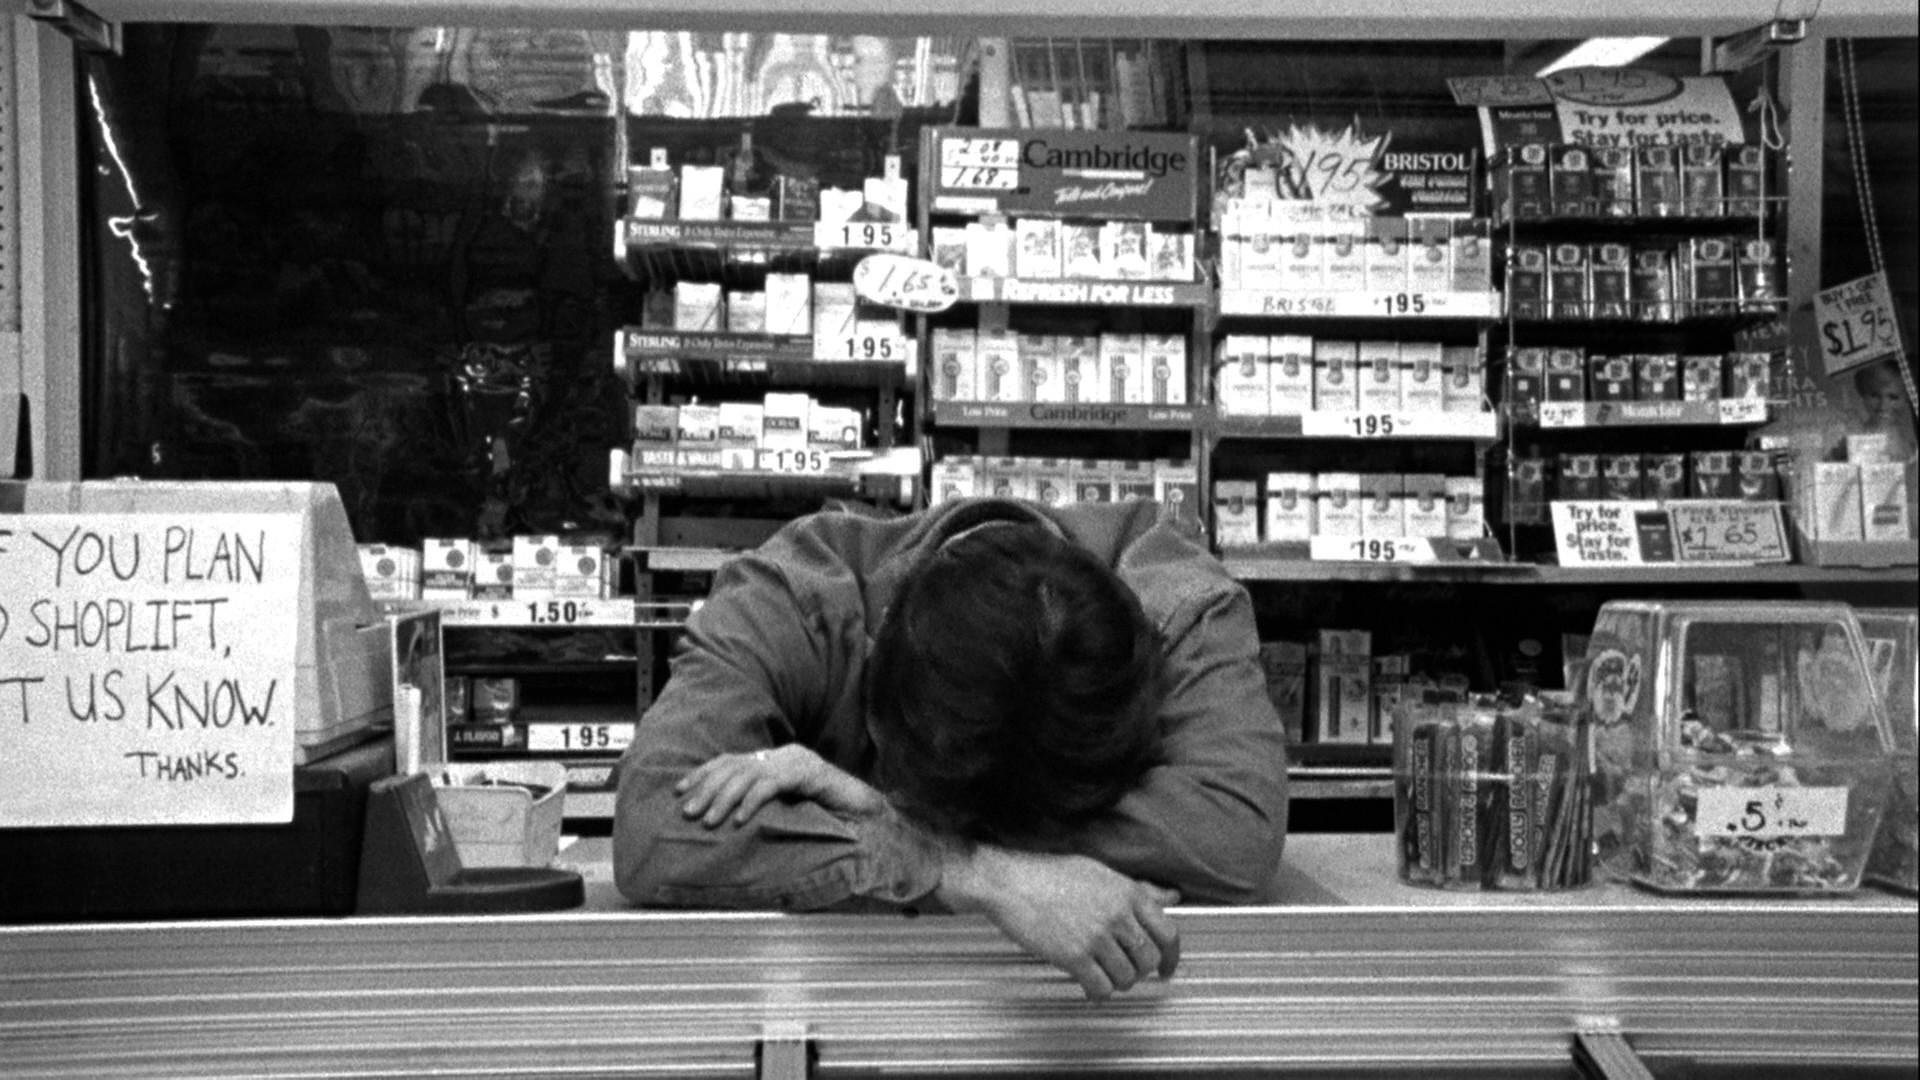 Dante from Clerks considers his career prospects and gives thought to taking a job interview or two